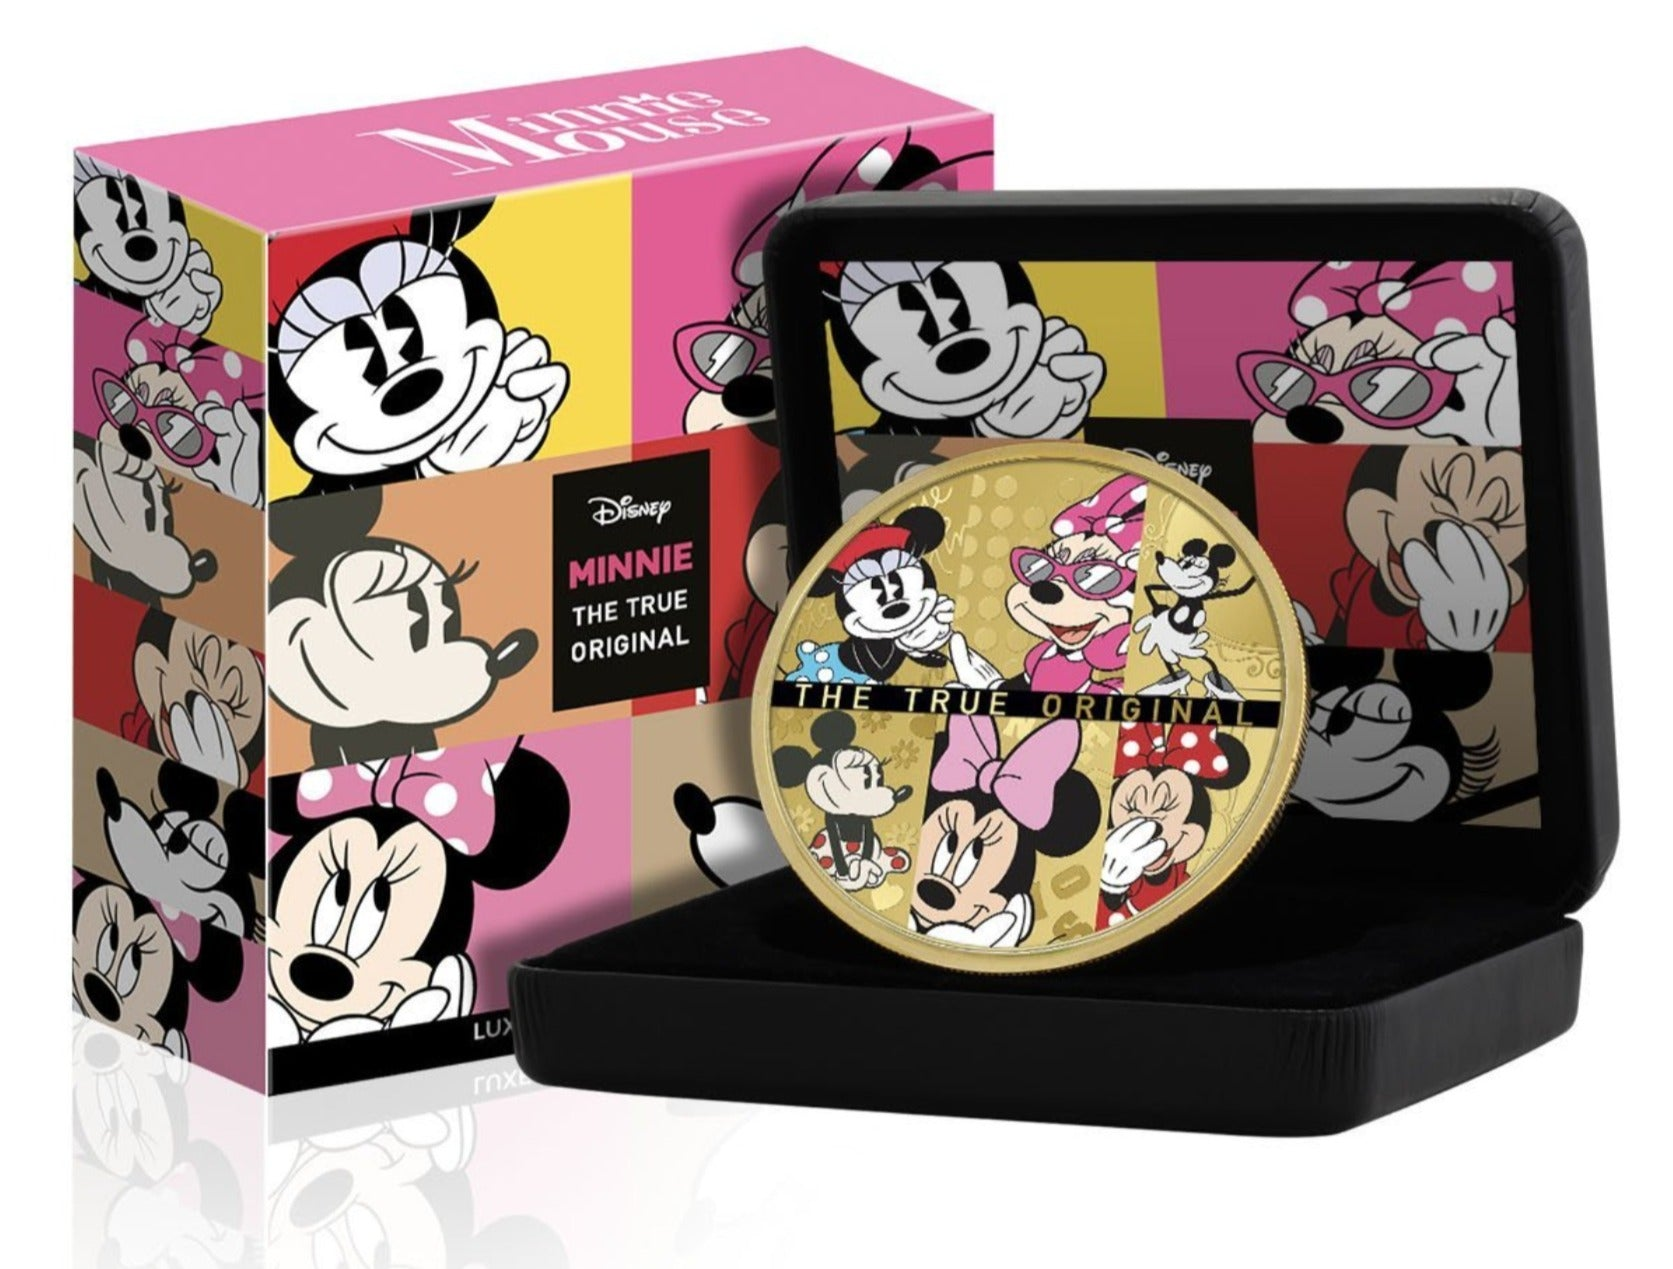 Disney Minnie Mouse Edición Luxe - Moneda / Medalla bañada en Oro 24 Quilates - 65mm